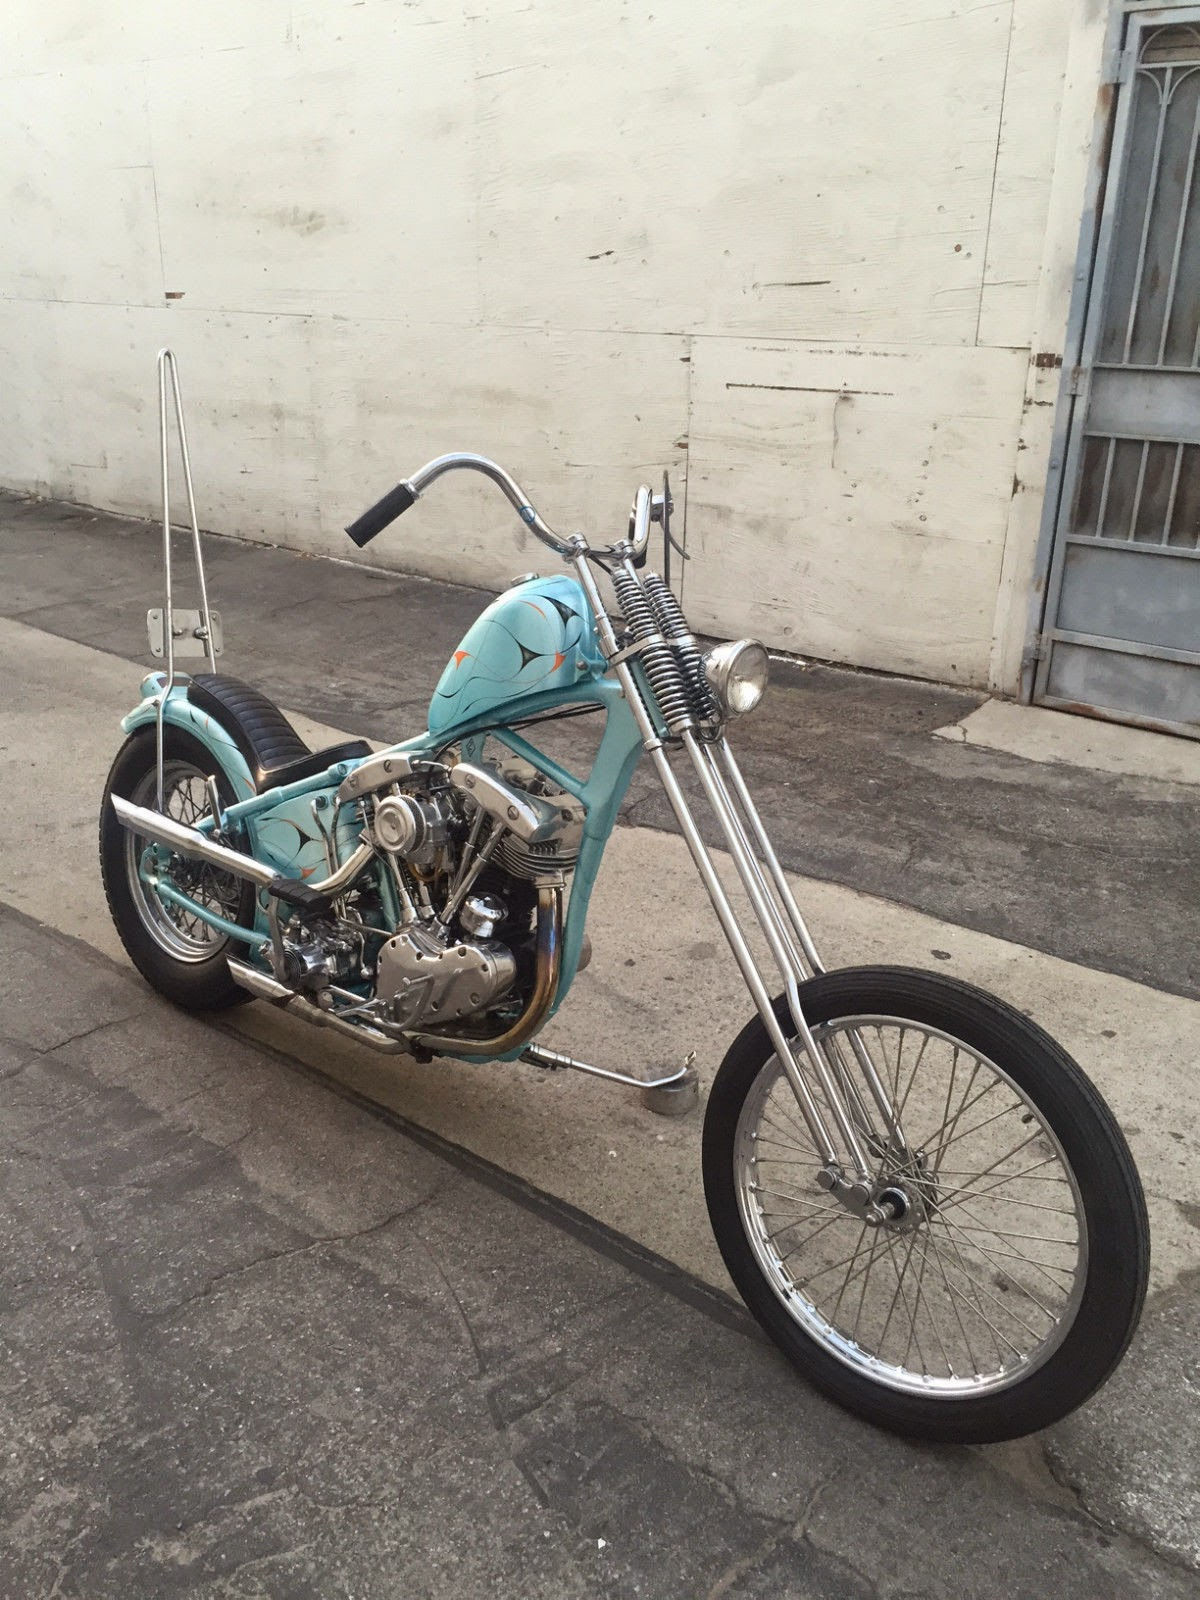 Shawn's Shovelhead Chopper is